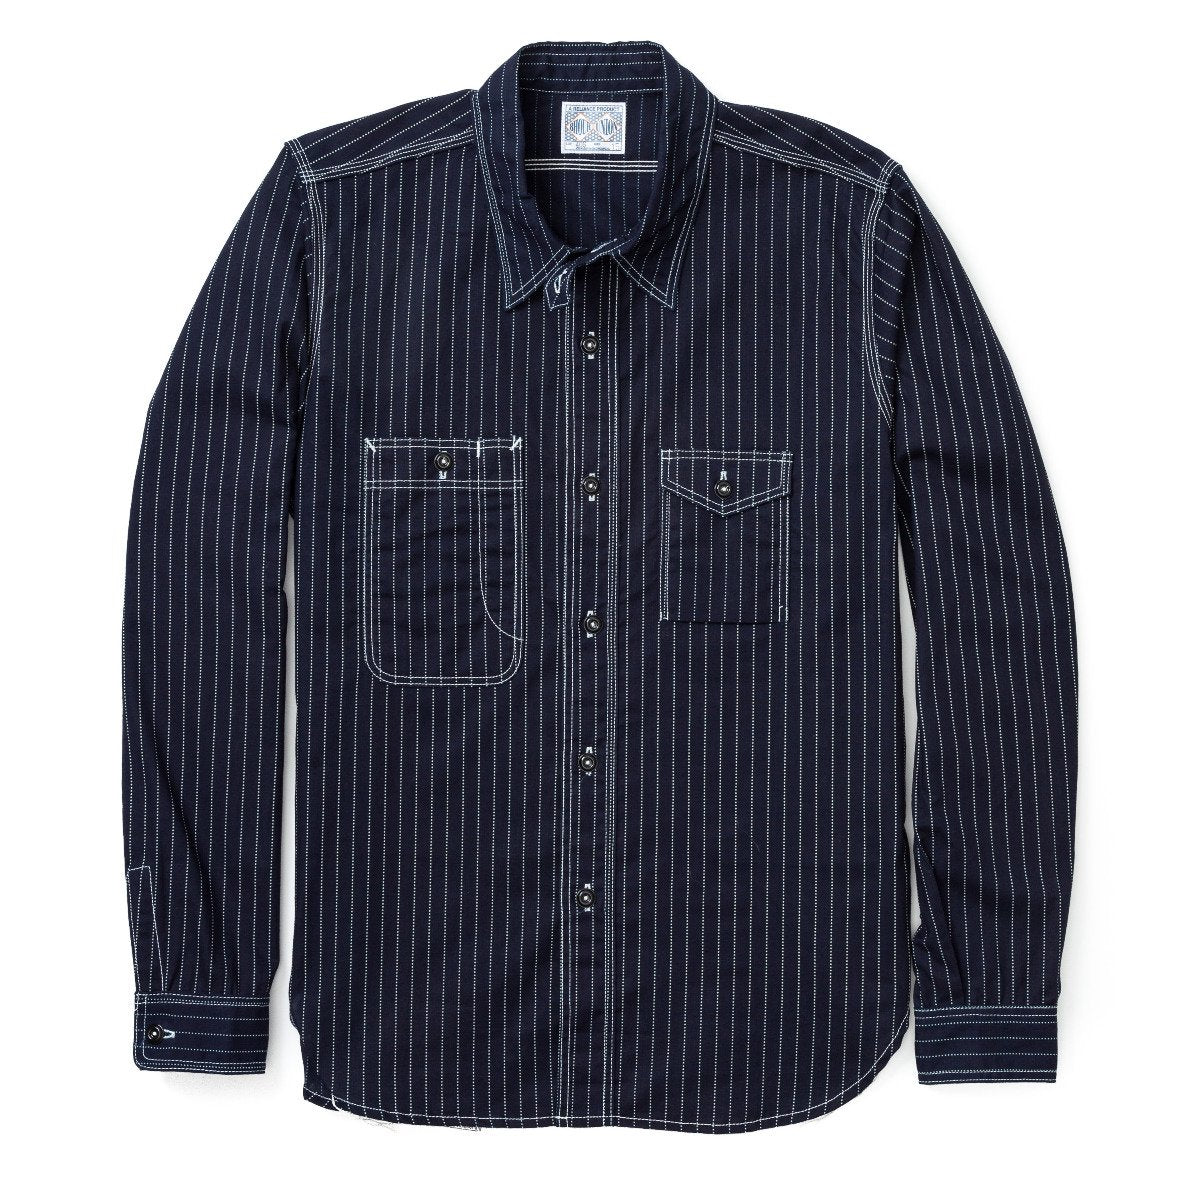 8HU Wabash Stripe Shirt